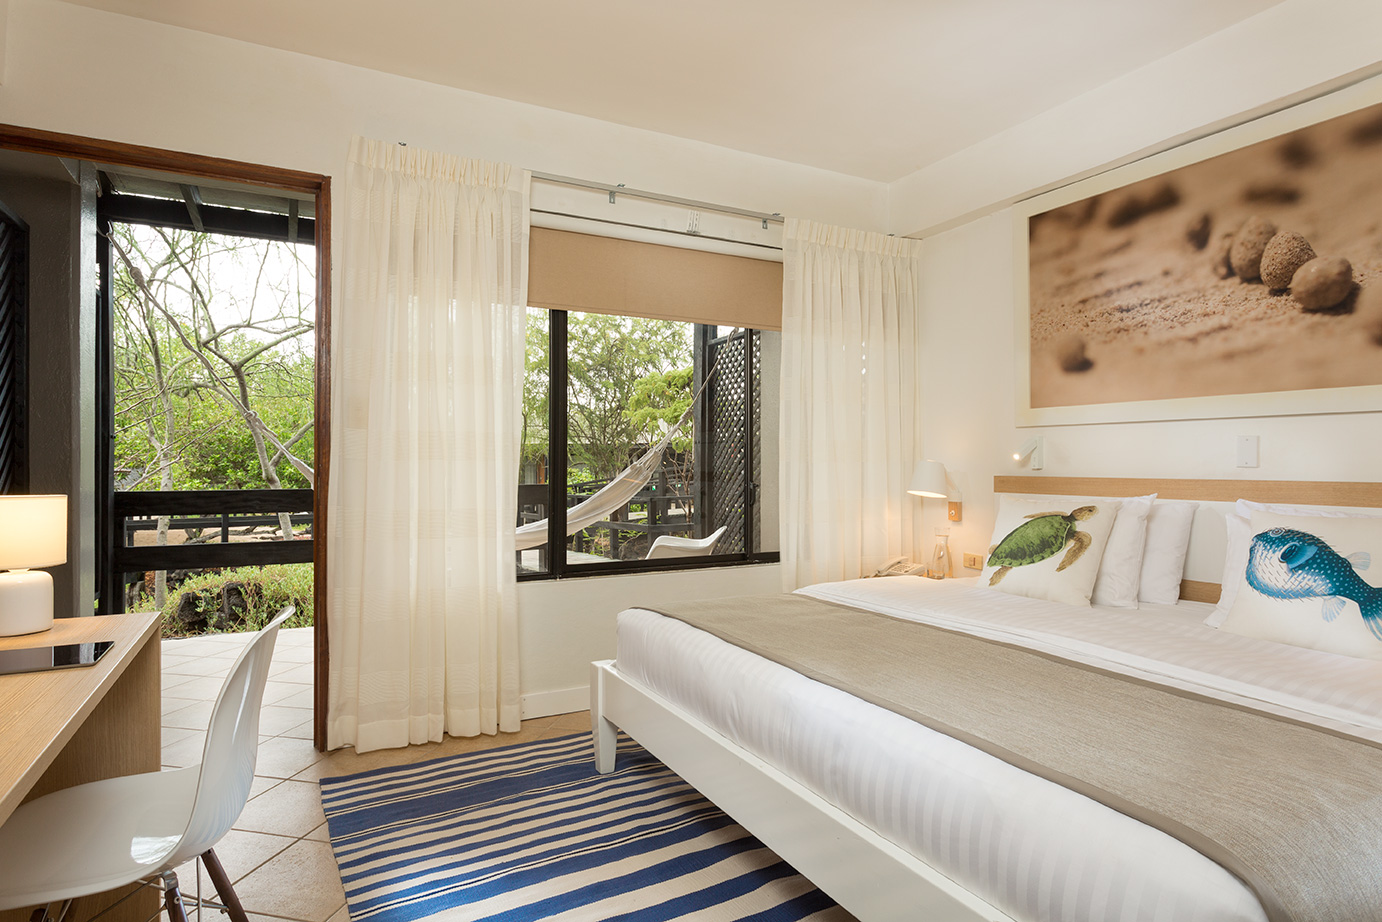 Galapagos Islands Hotel Suites And Rooms